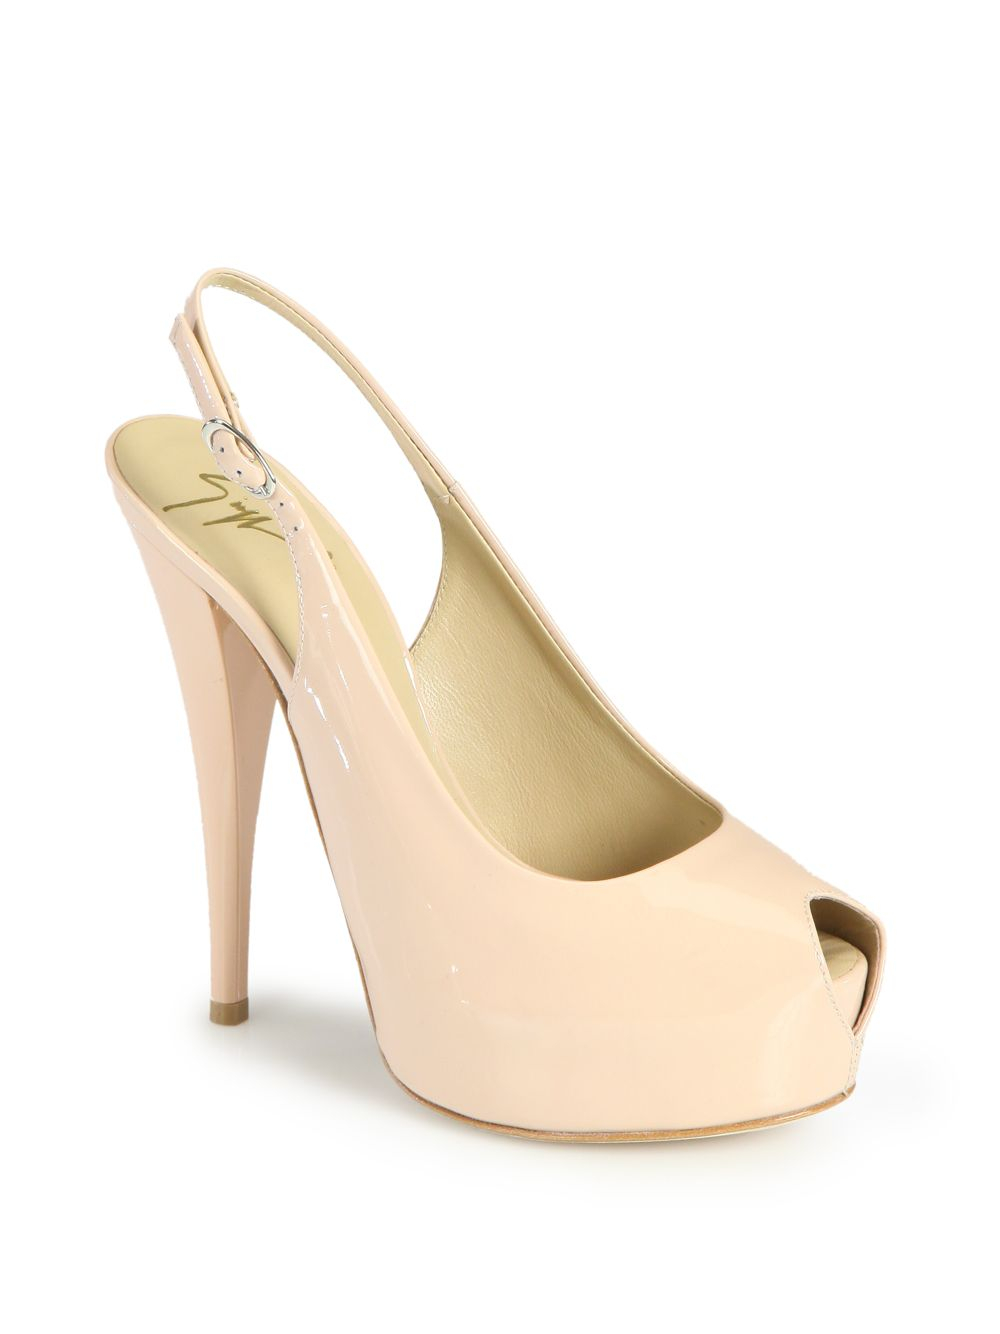 Giuseppe Zanotti Glossy Nude Patent Heels in Natural - Lyst